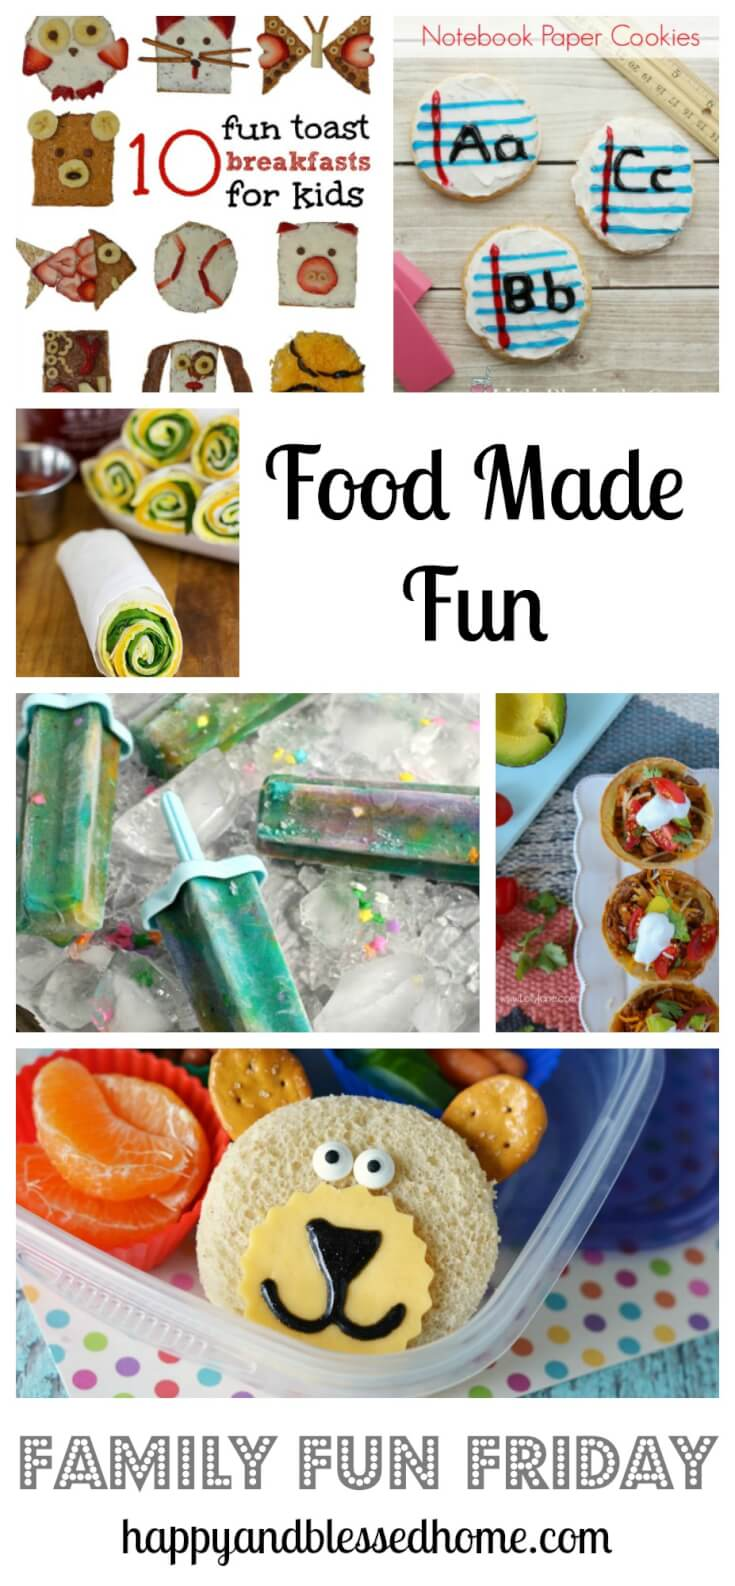 Food made fun on family fun friday